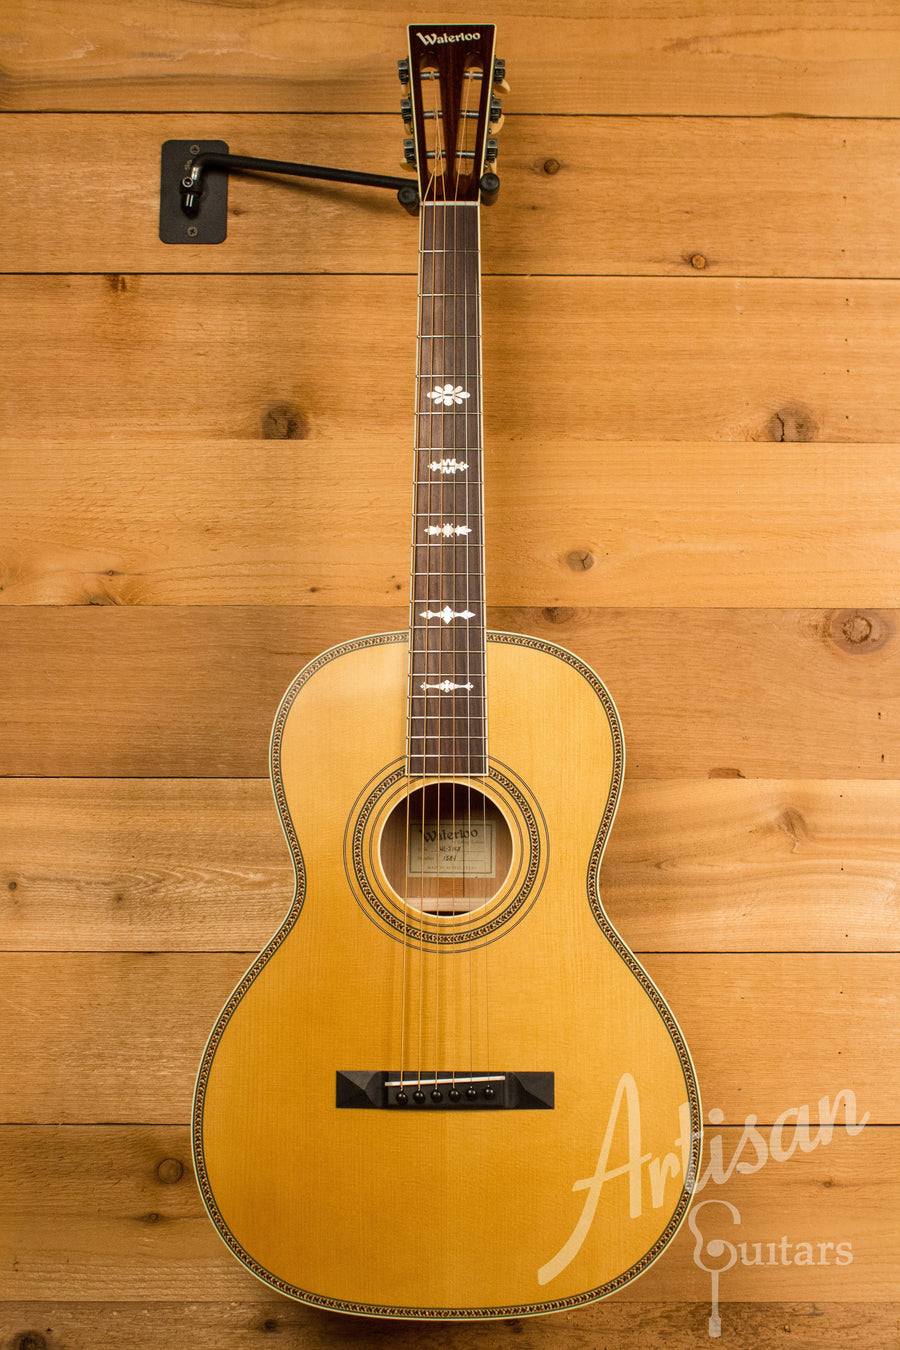 Waterloo WL-S DLX Ladder Braced Guitar Solid Spruce and Cherry ID-10956 - Artisan Guitars